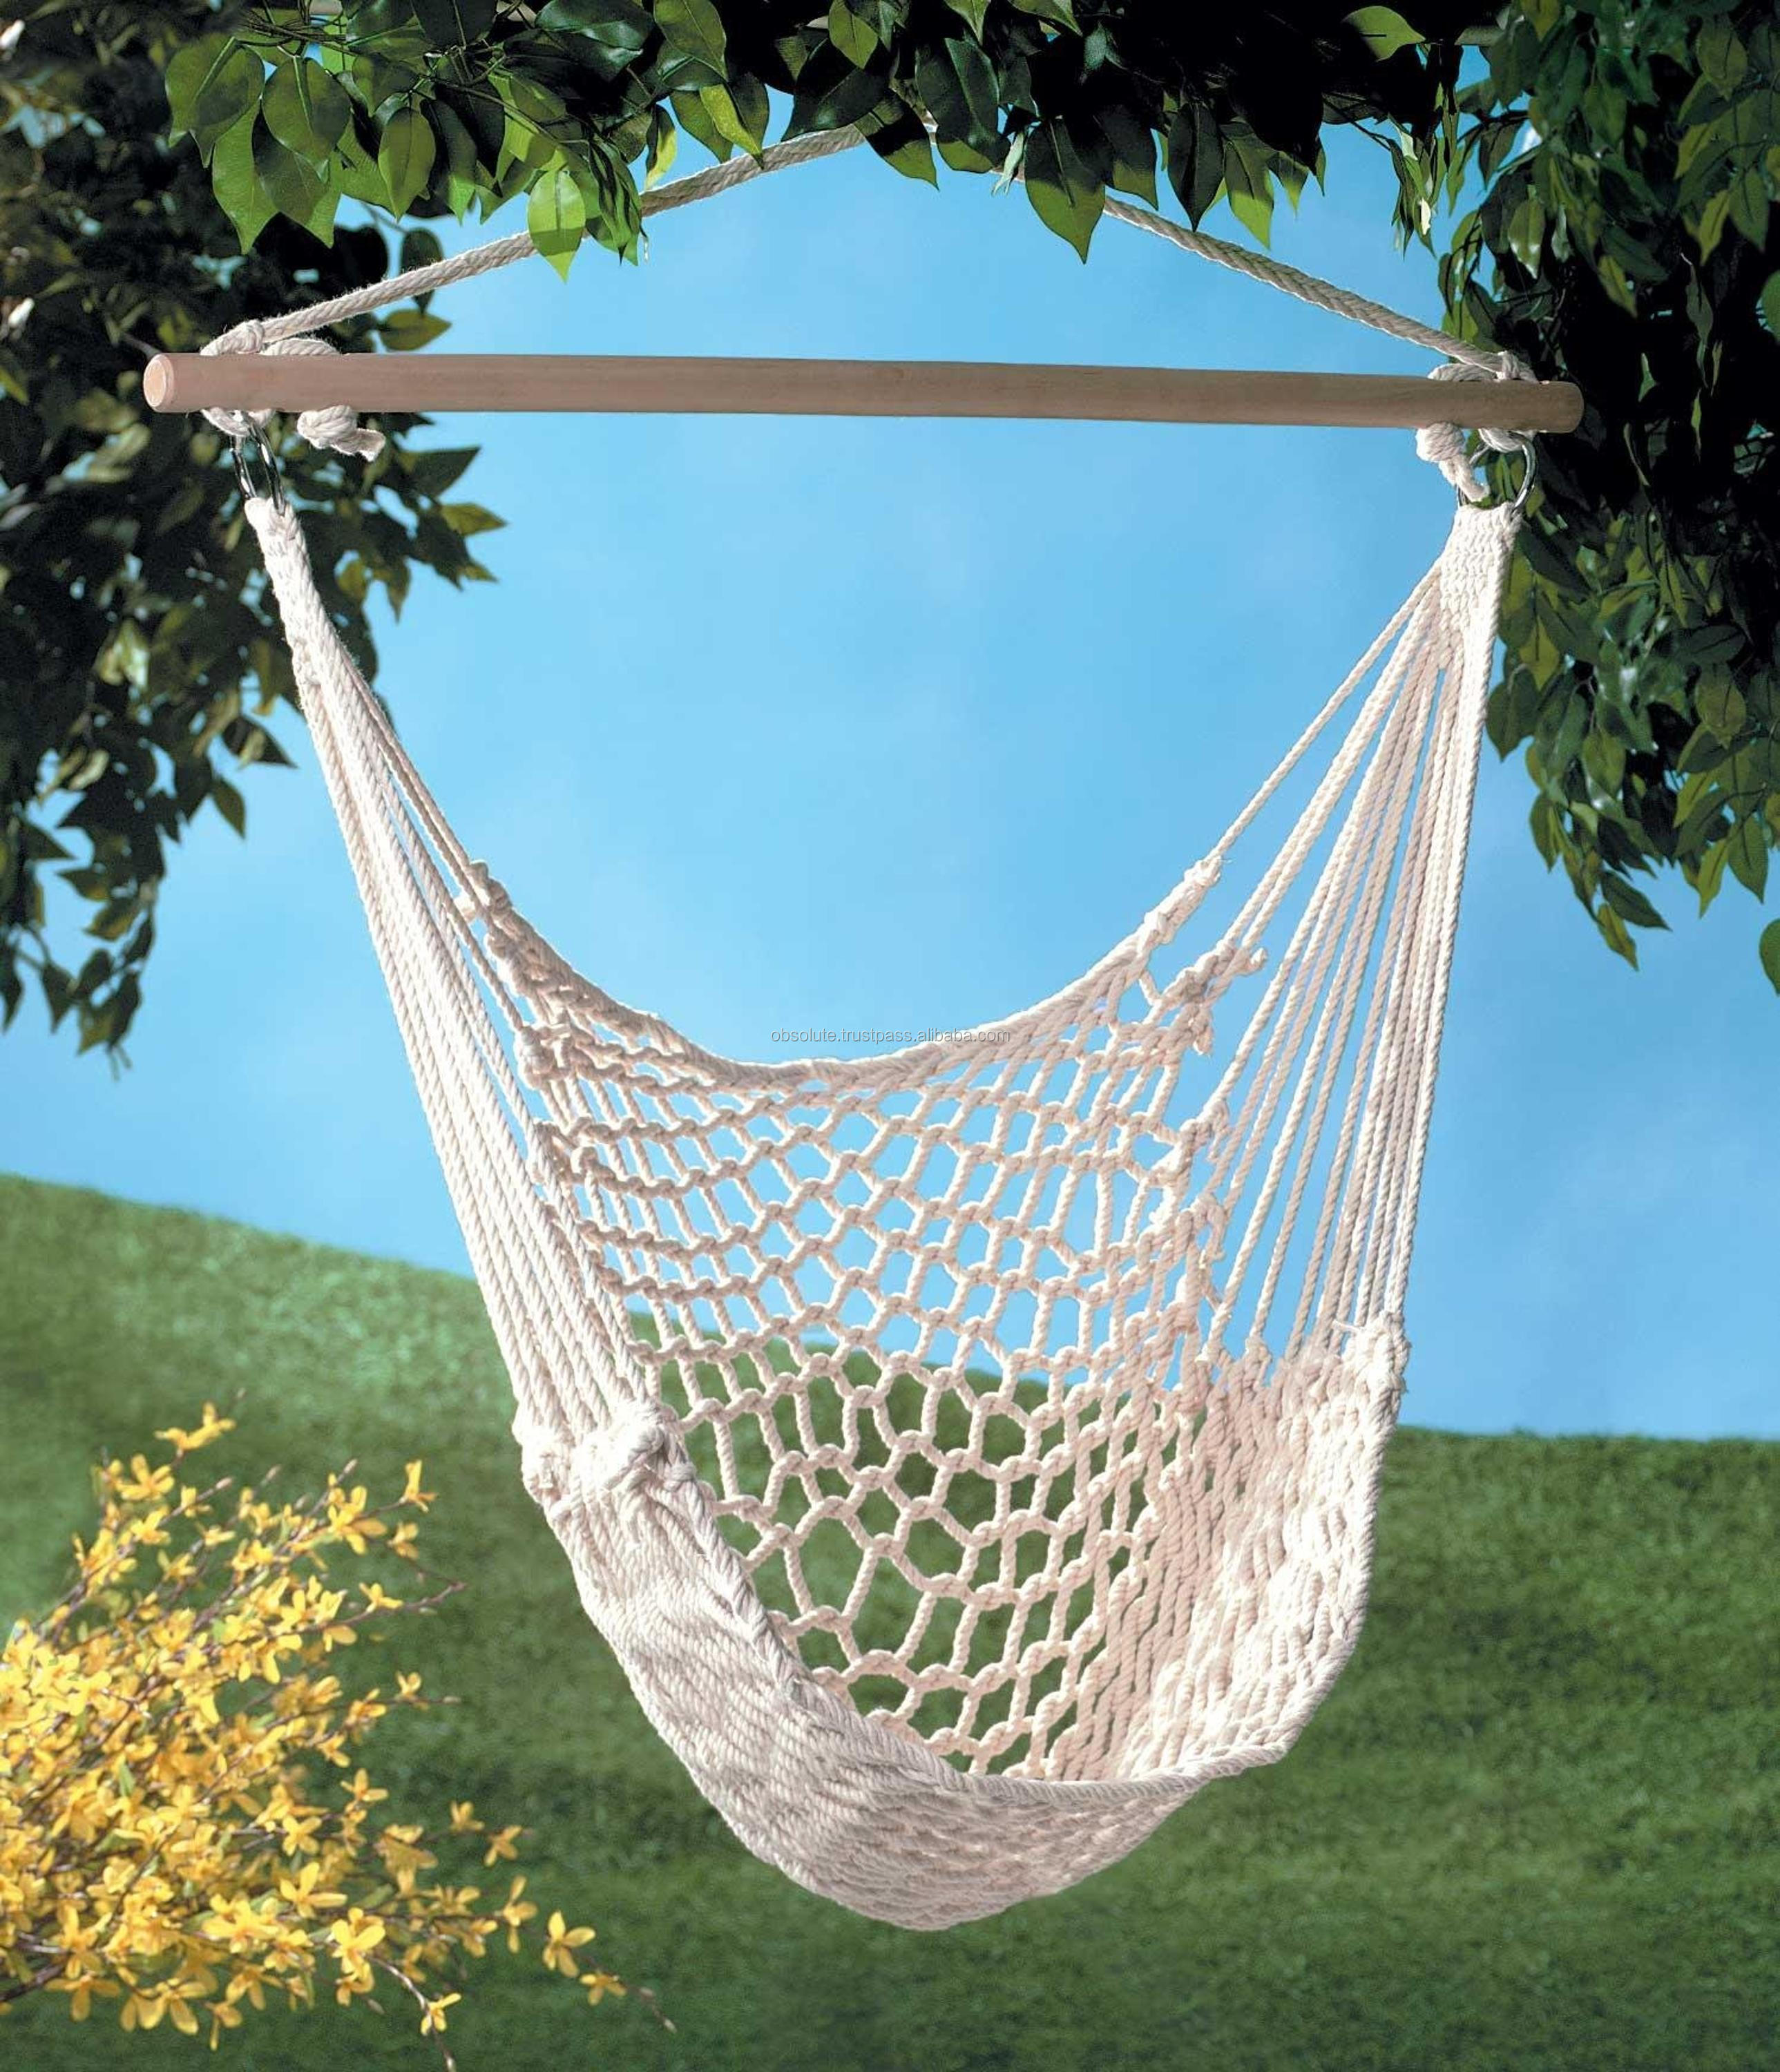 swinging of swing ideas nytexas bedroom unique the plans chair wide wicker stand range for hammock white